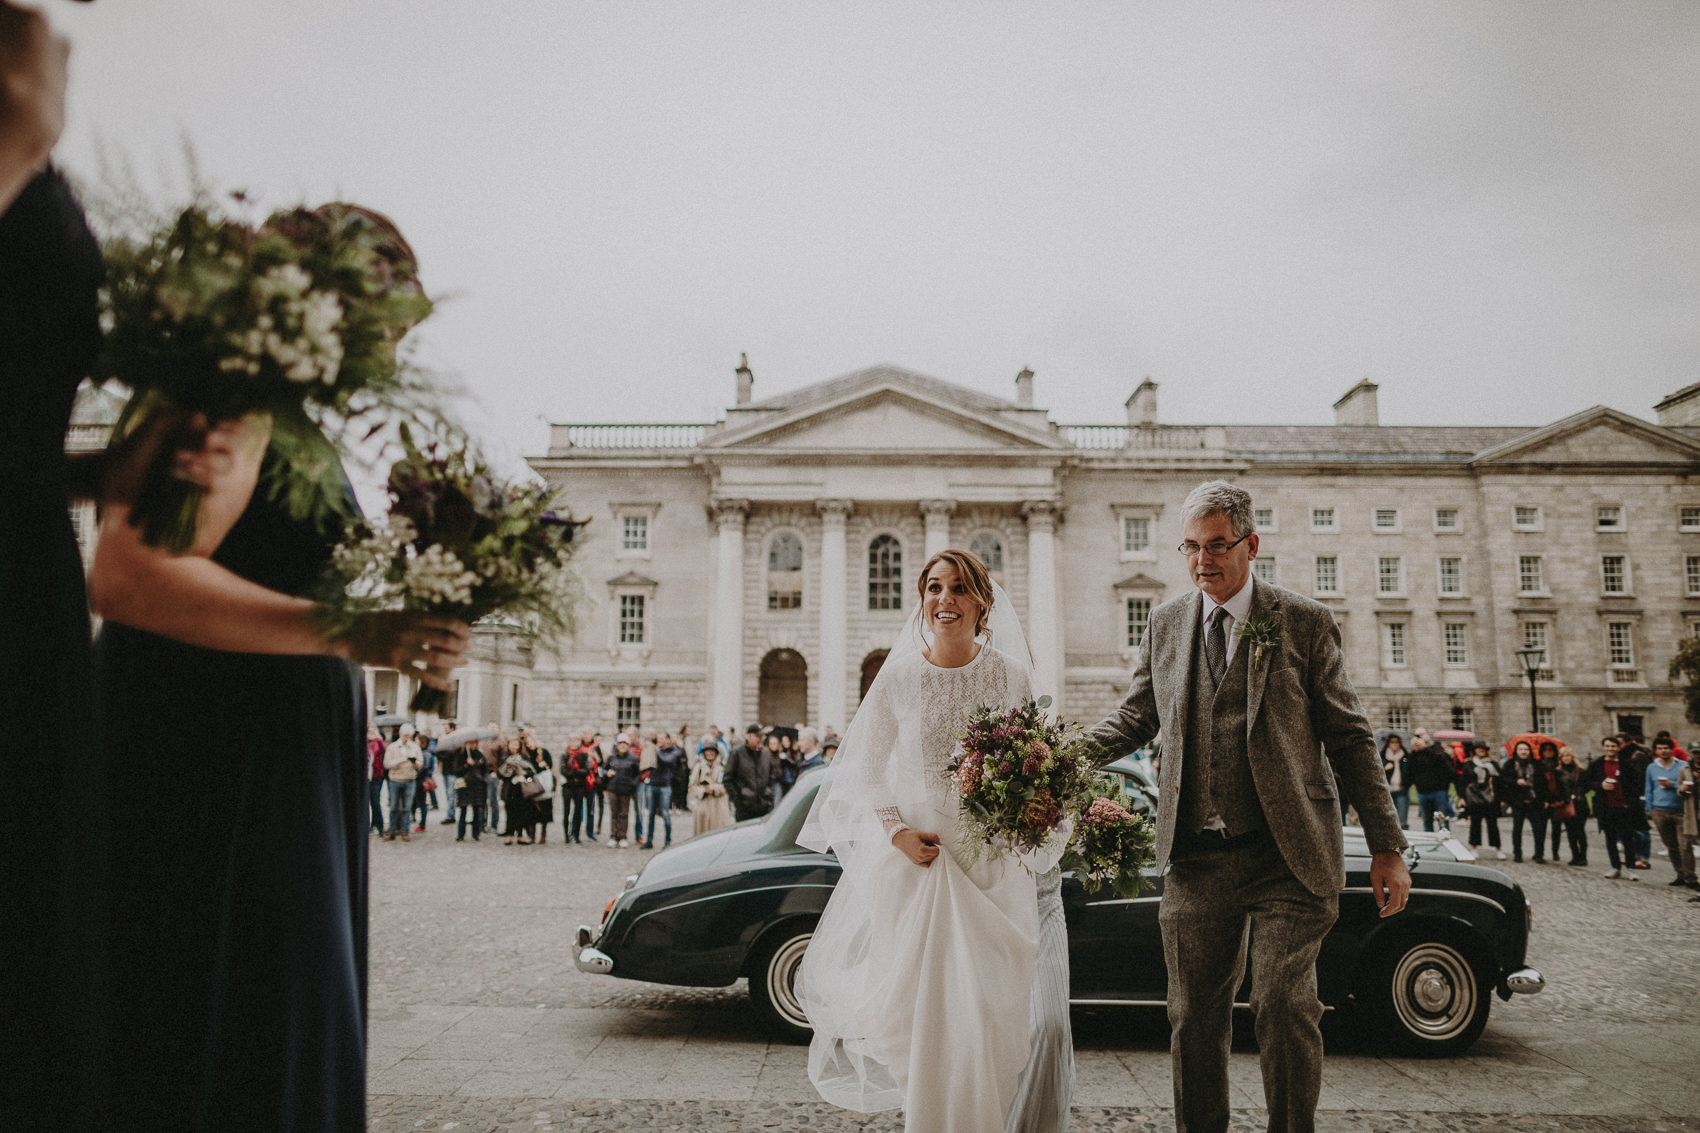 Jessica & Vincent wedding at Martinstown House 27